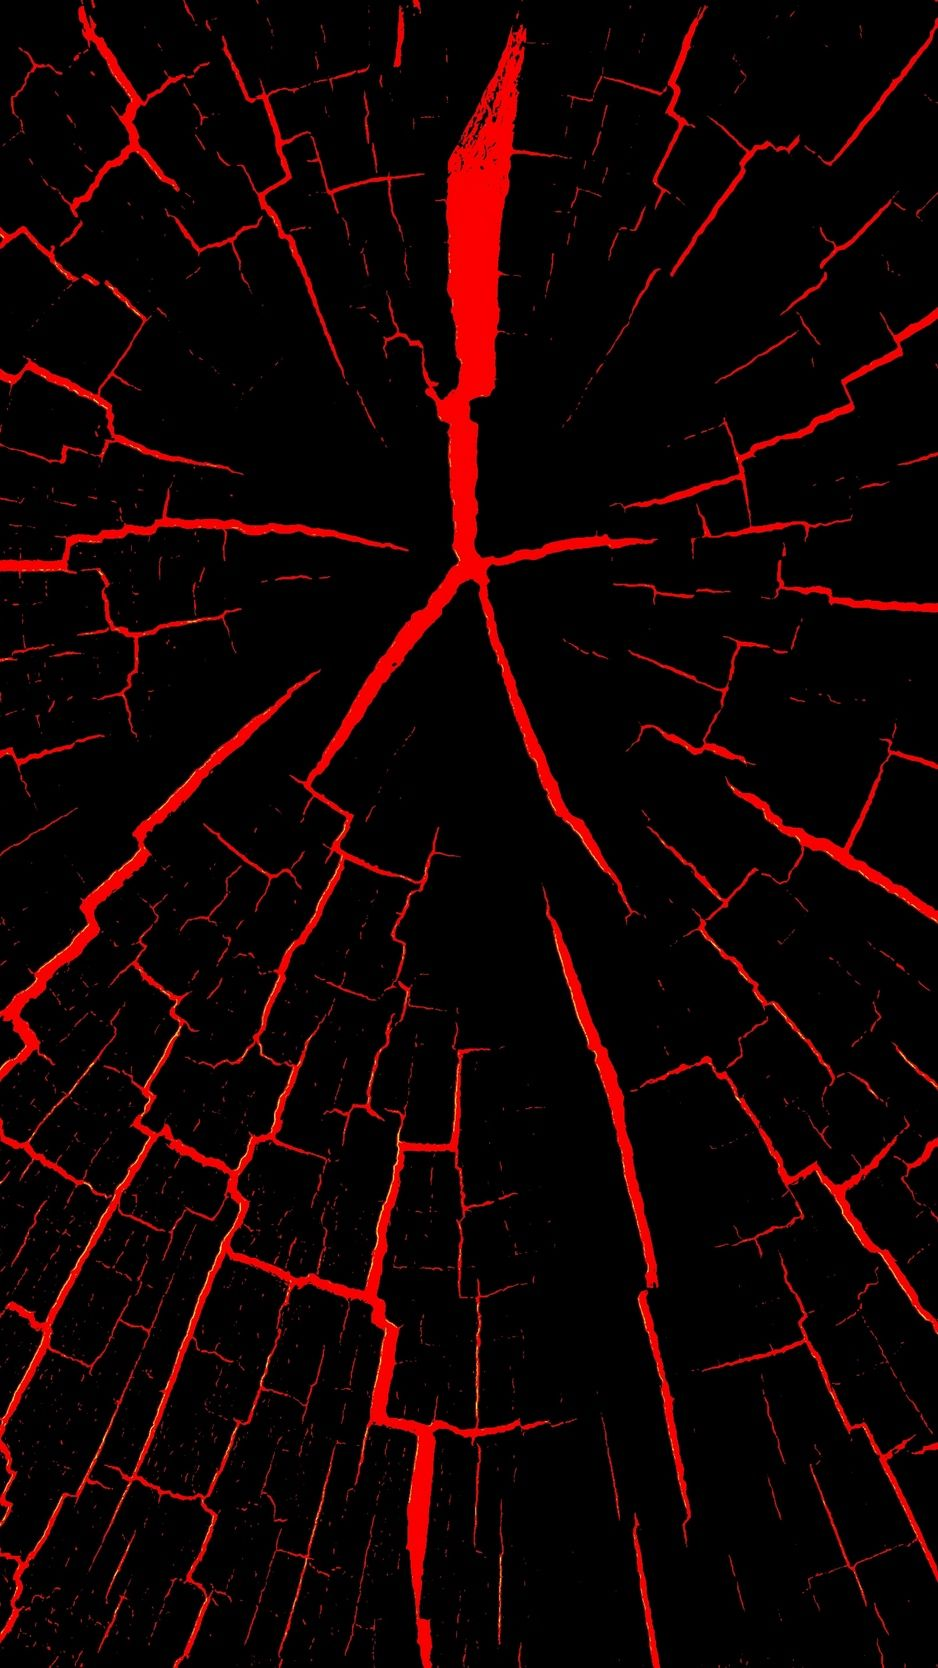 Red And Black Wallpapers 4k Hd Red And Black Backgrounds On Wallpaperbat